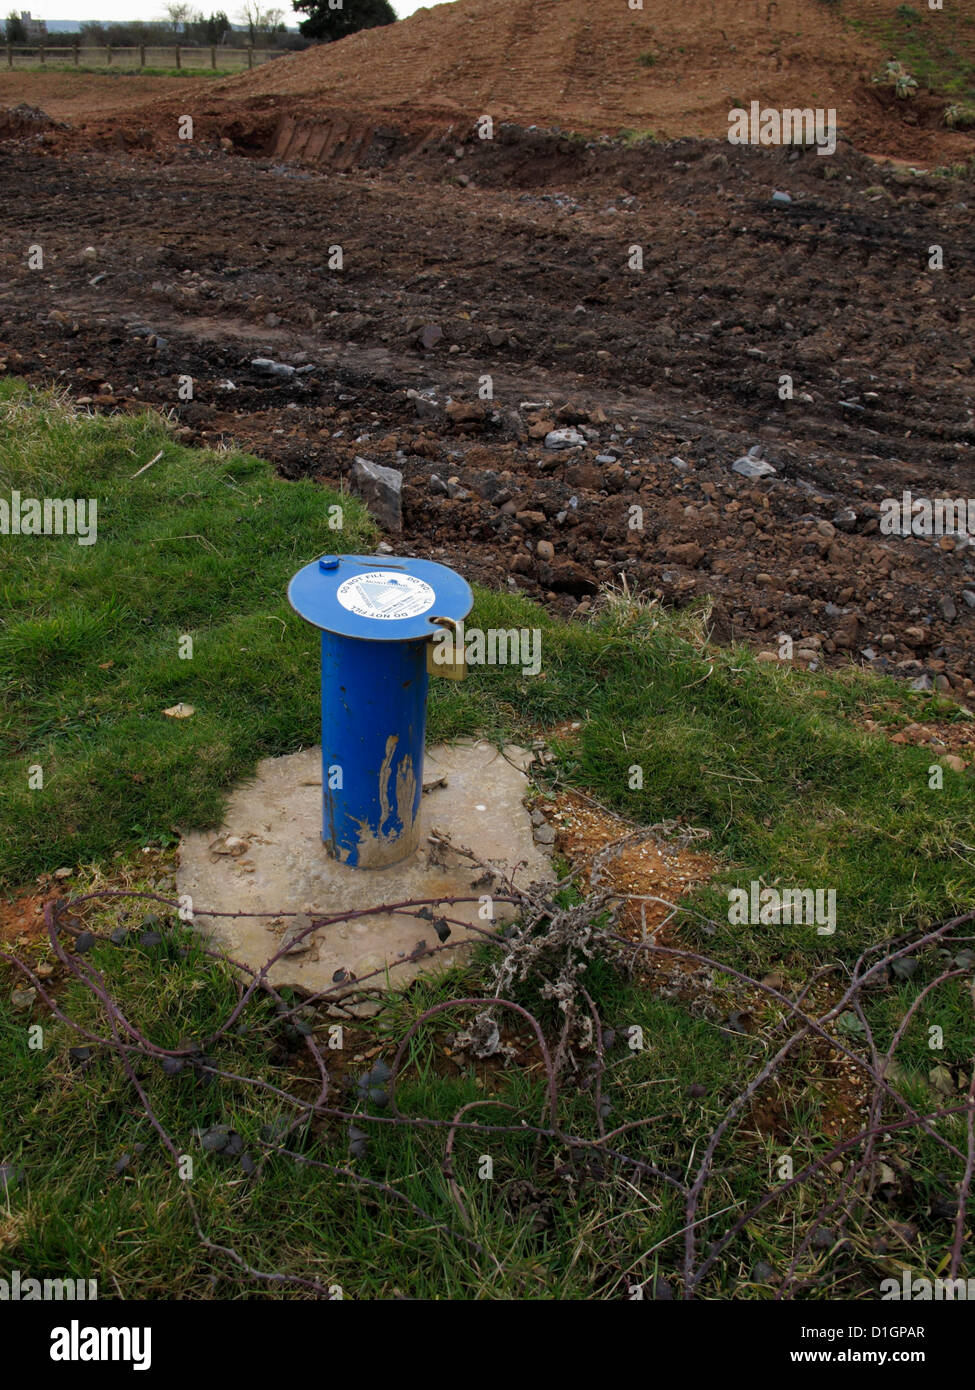 Lockable Cover of borehole standpipe accessed for monitoring groundwater water table level for geotechnical geological - Stock Image